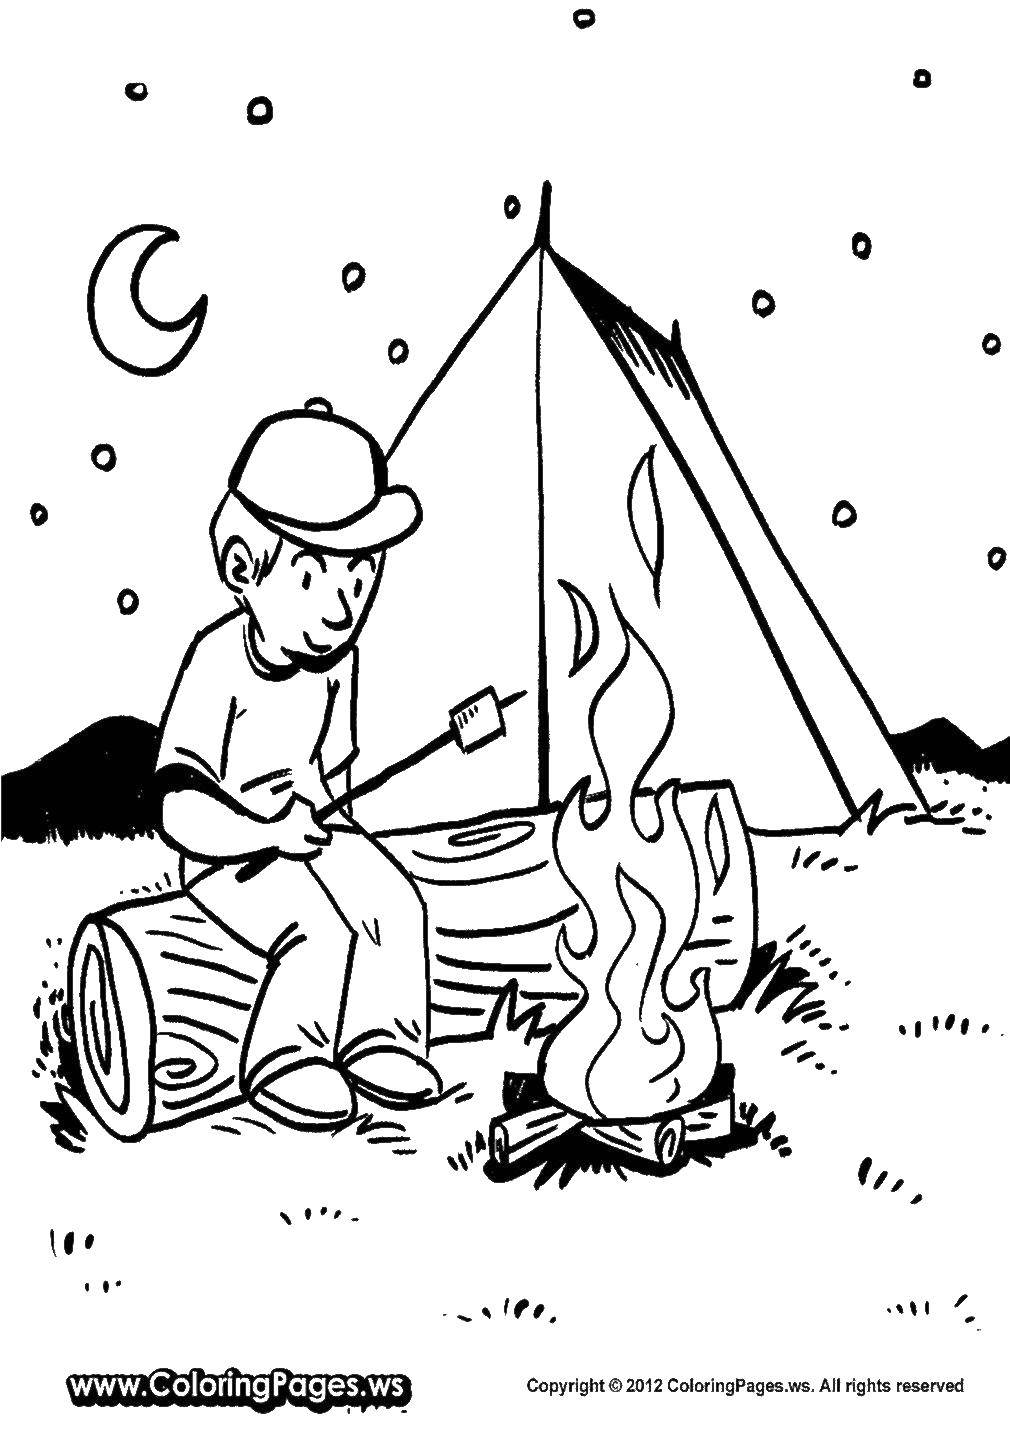 Coloring sheet Camping Download children, school, cleaning.  Print ,school,